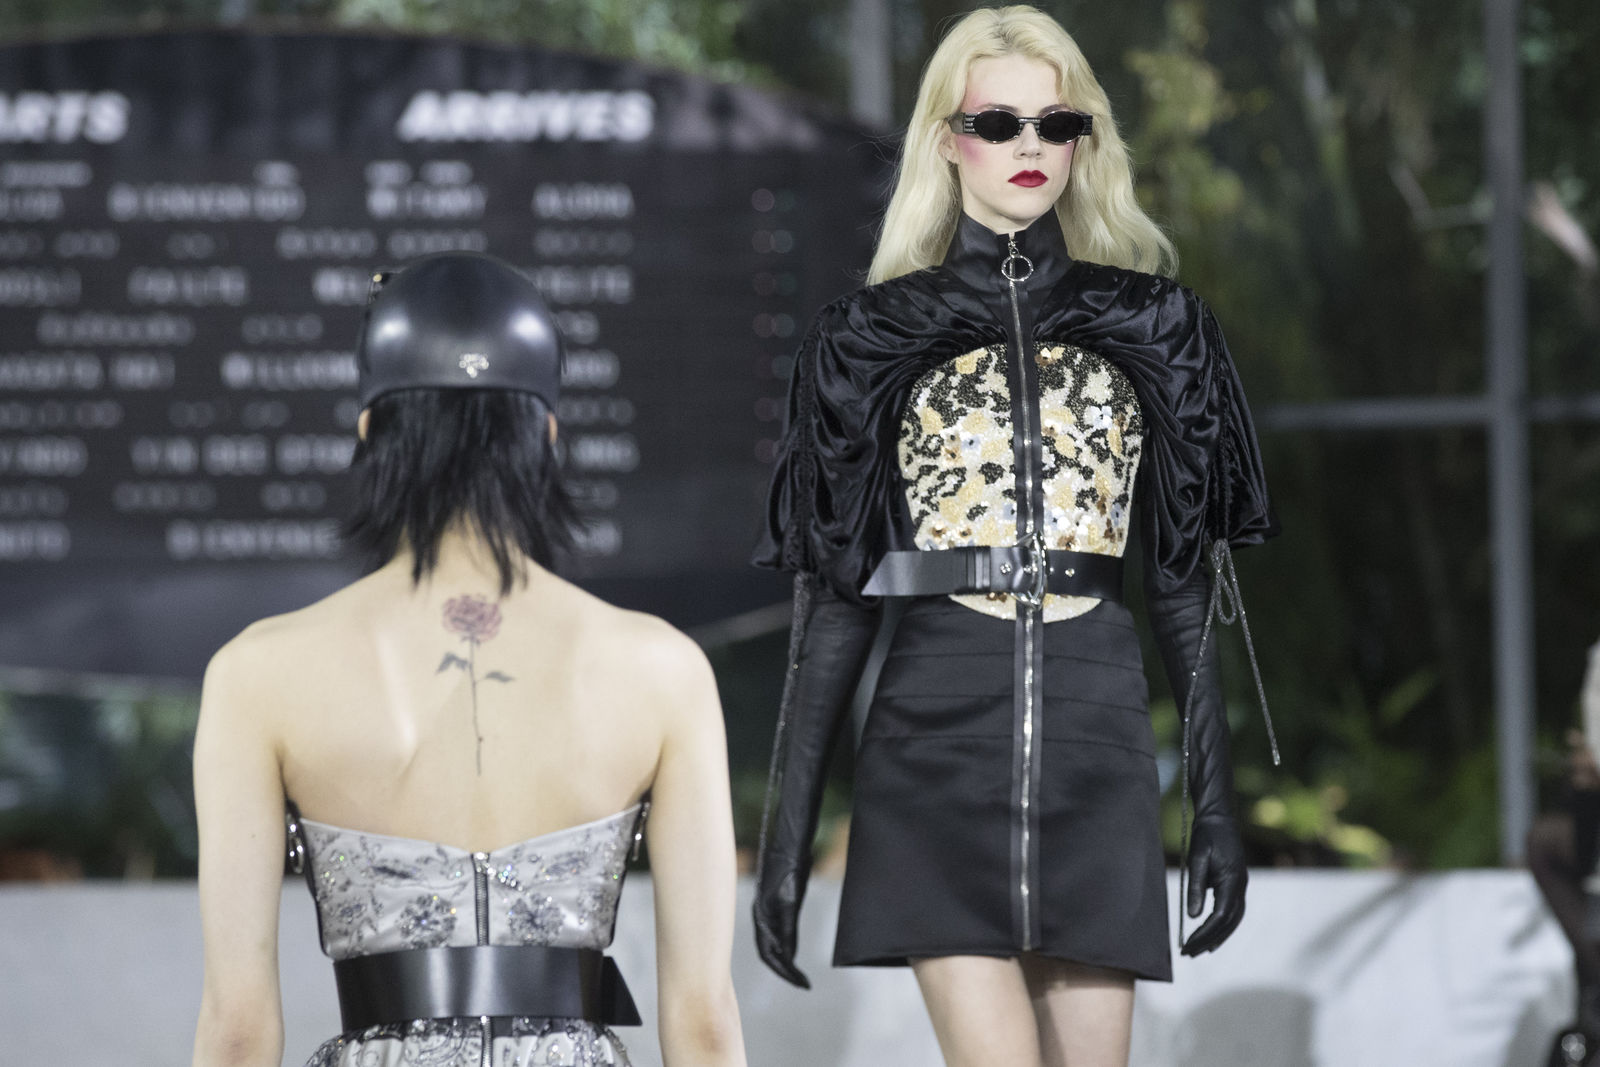 A model walks the runway during the Louis Vuitton Cruise 2020 collection presentation, Wednesday, May 8, 2019, in New York. (AP Photo/Mary Altaffer)